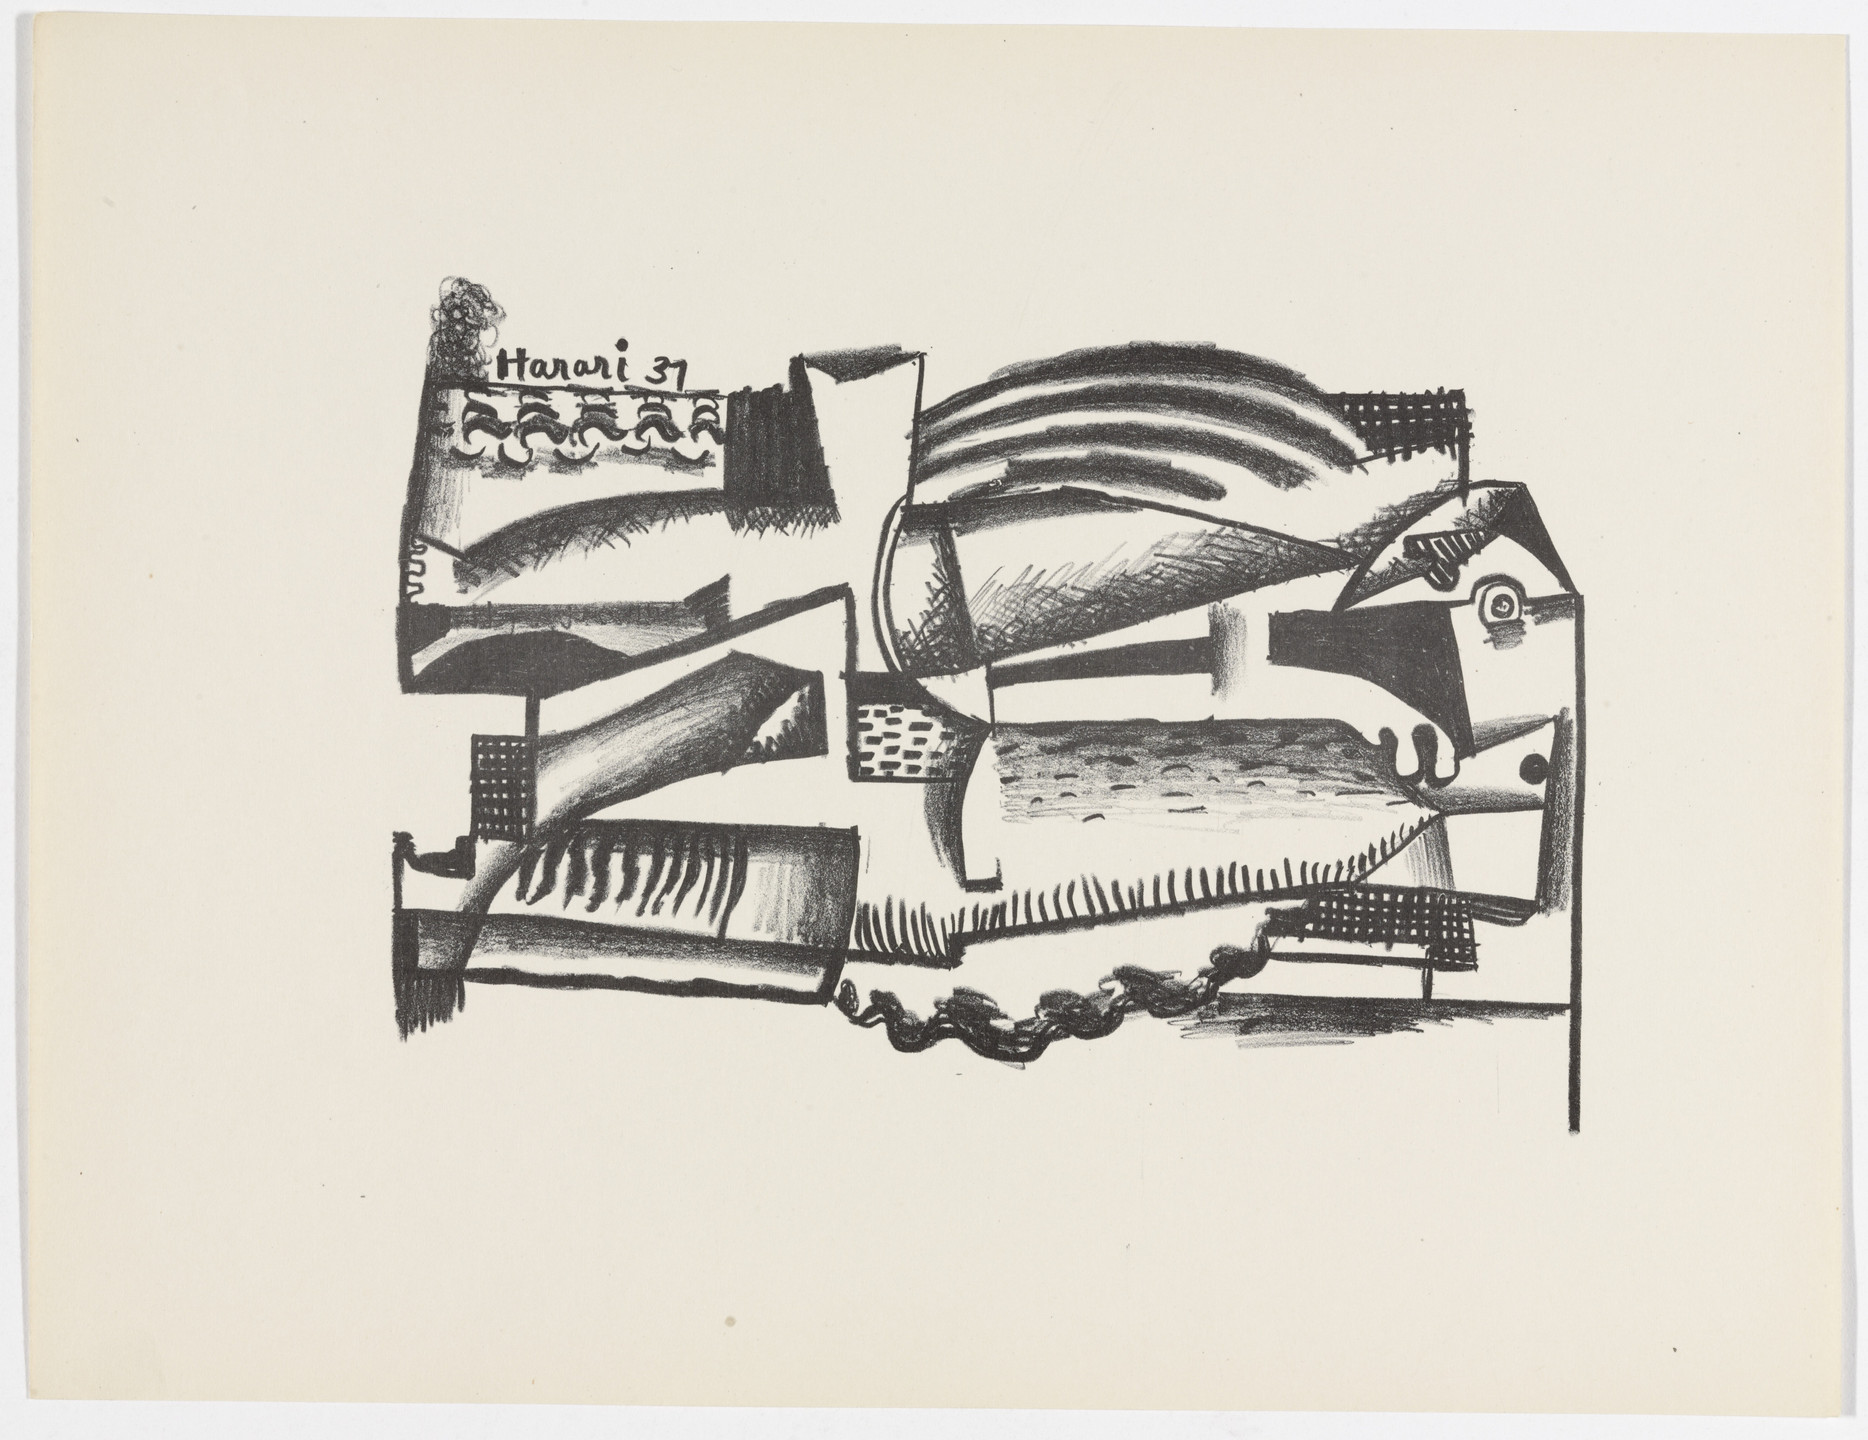 Hananiah Harari. Untitled from American Abstract Artists. 1937